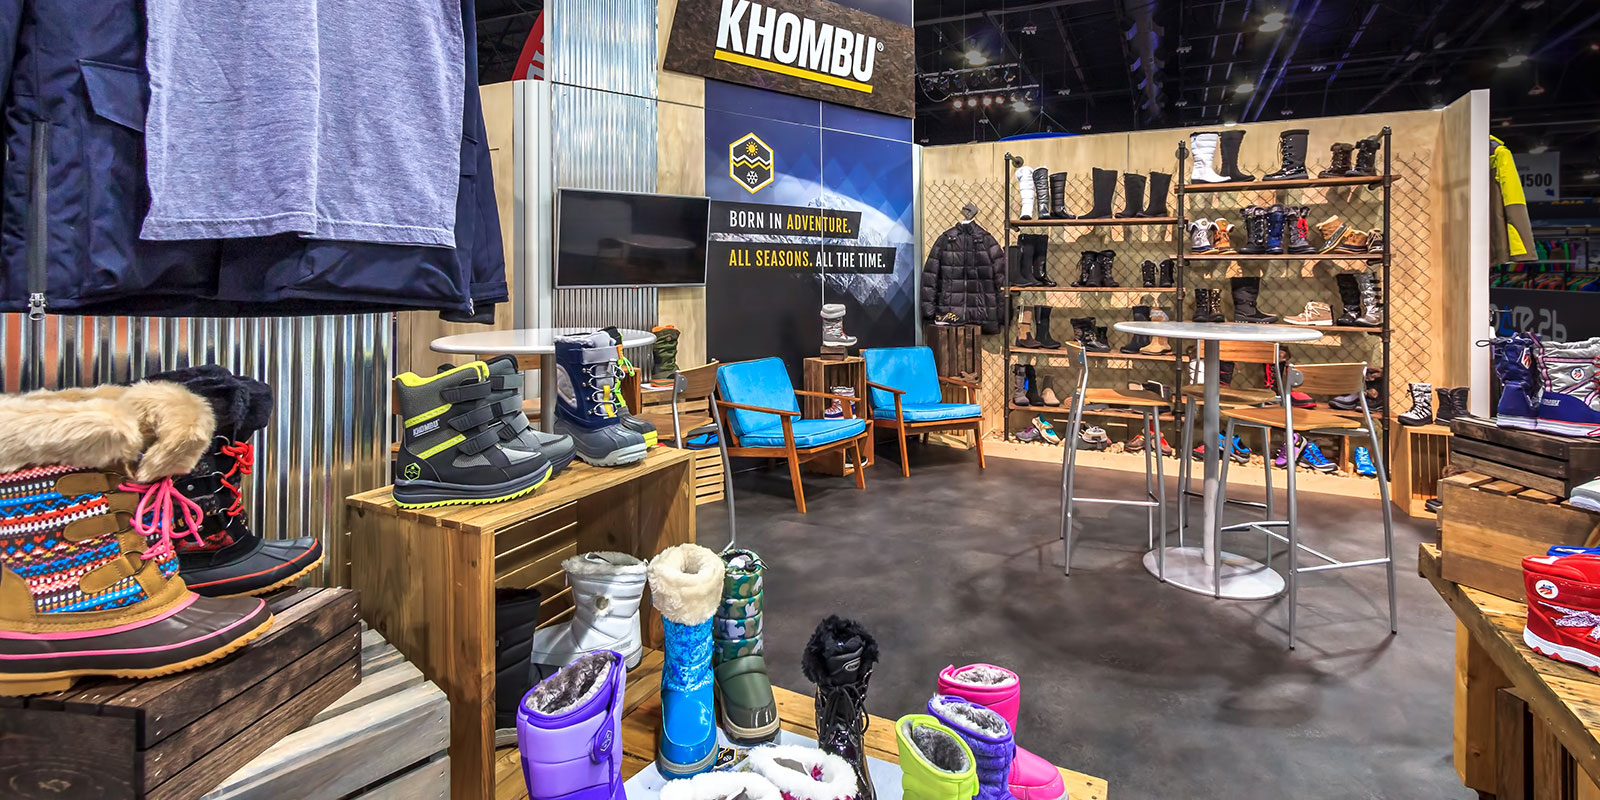 Hill & Partners Rental Branded Environment Trade Show Exhibit for Khombu